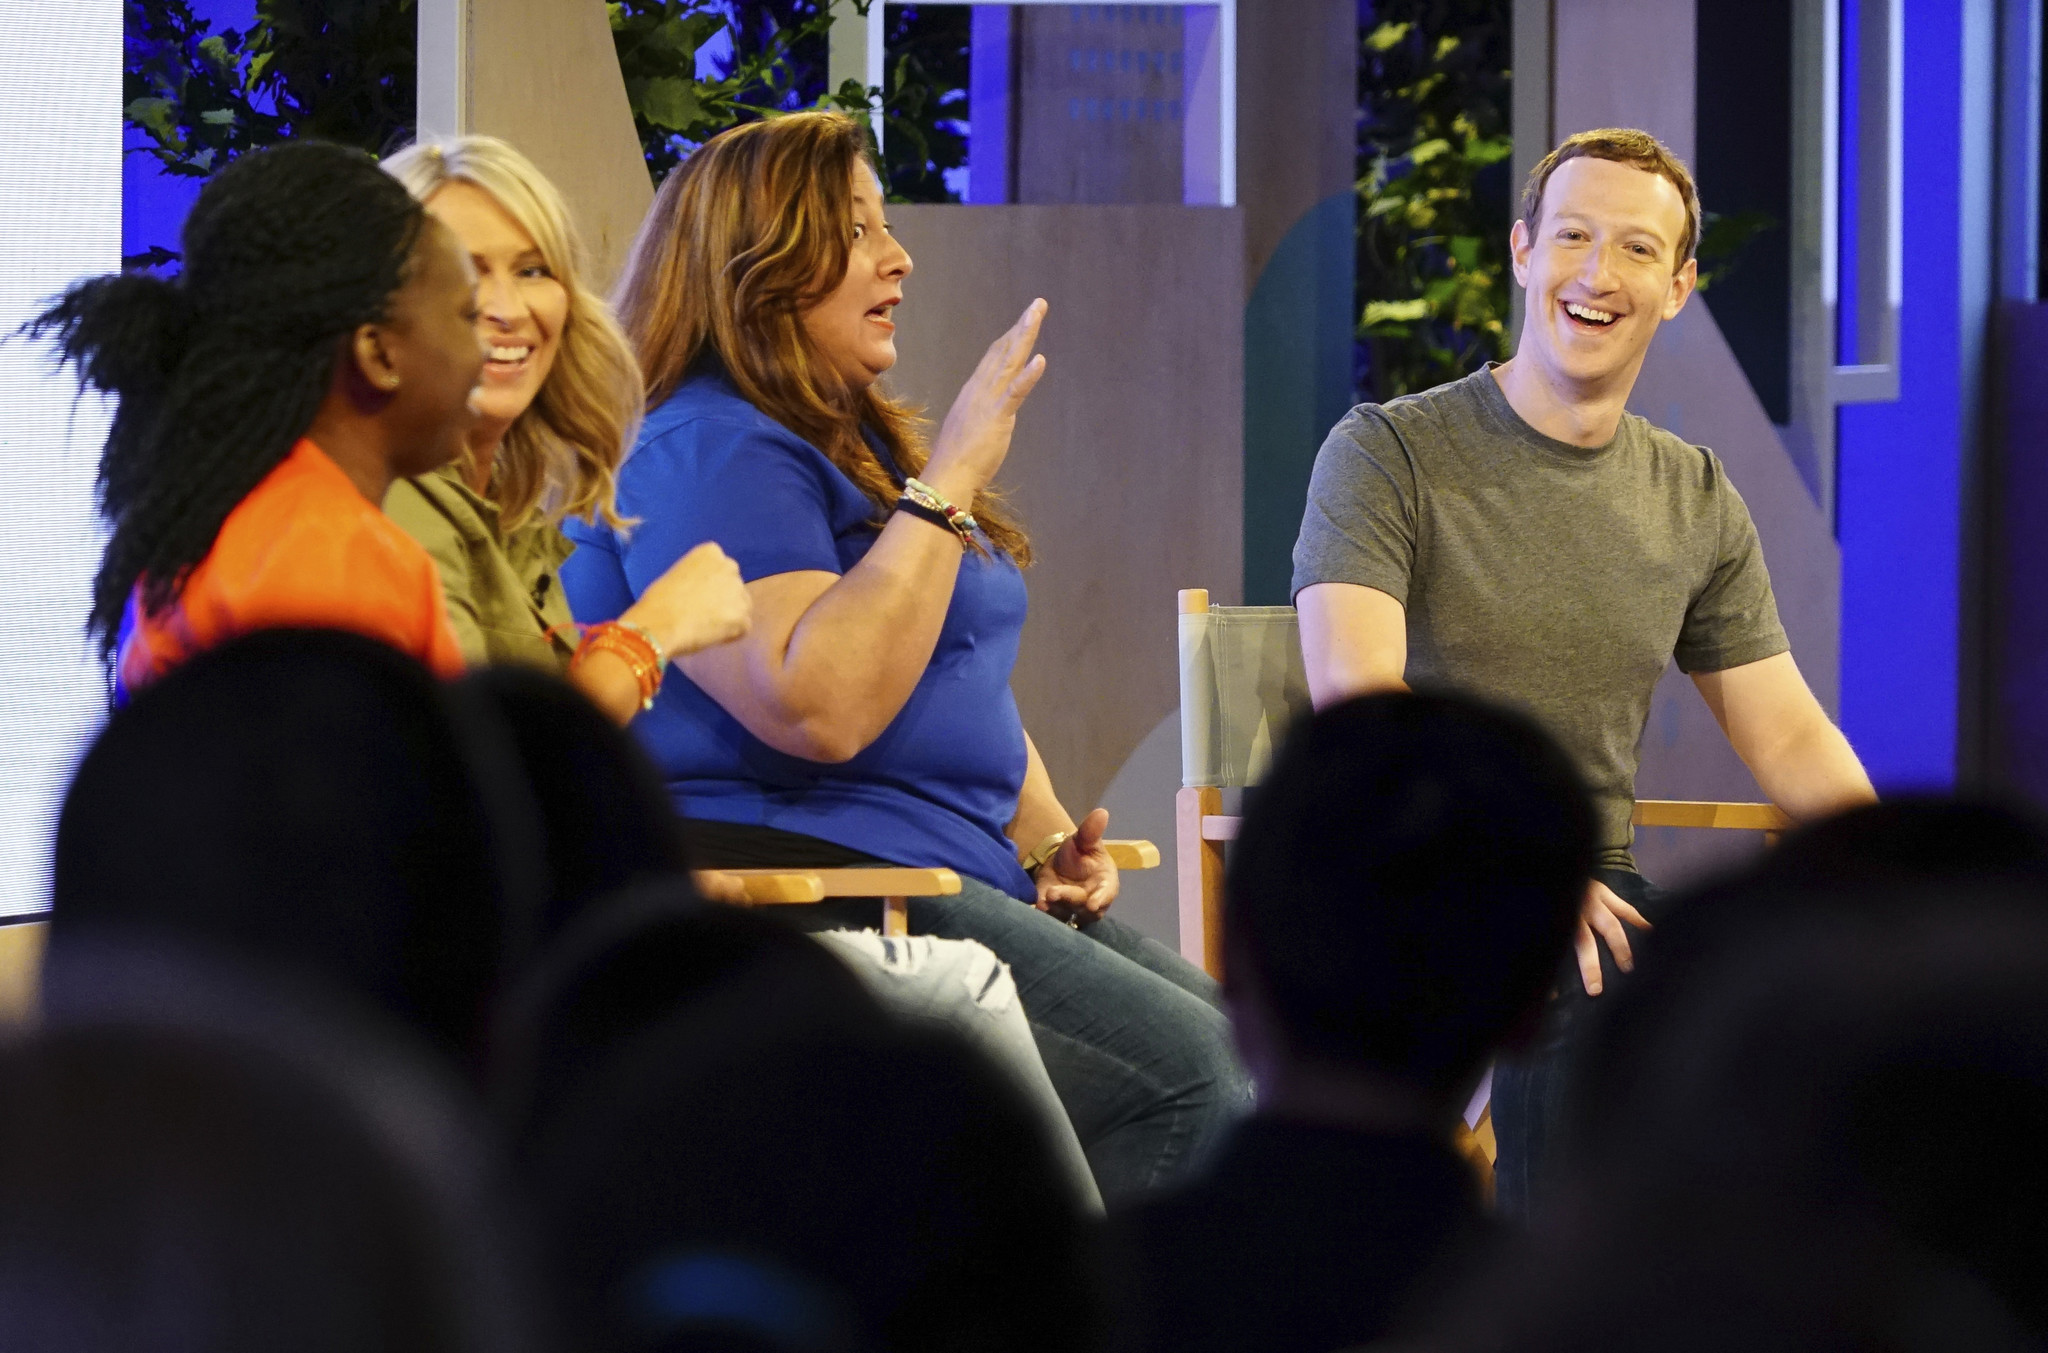 Facebook's Communities Summit Brings Together the Internet's Unifiers in Chicago